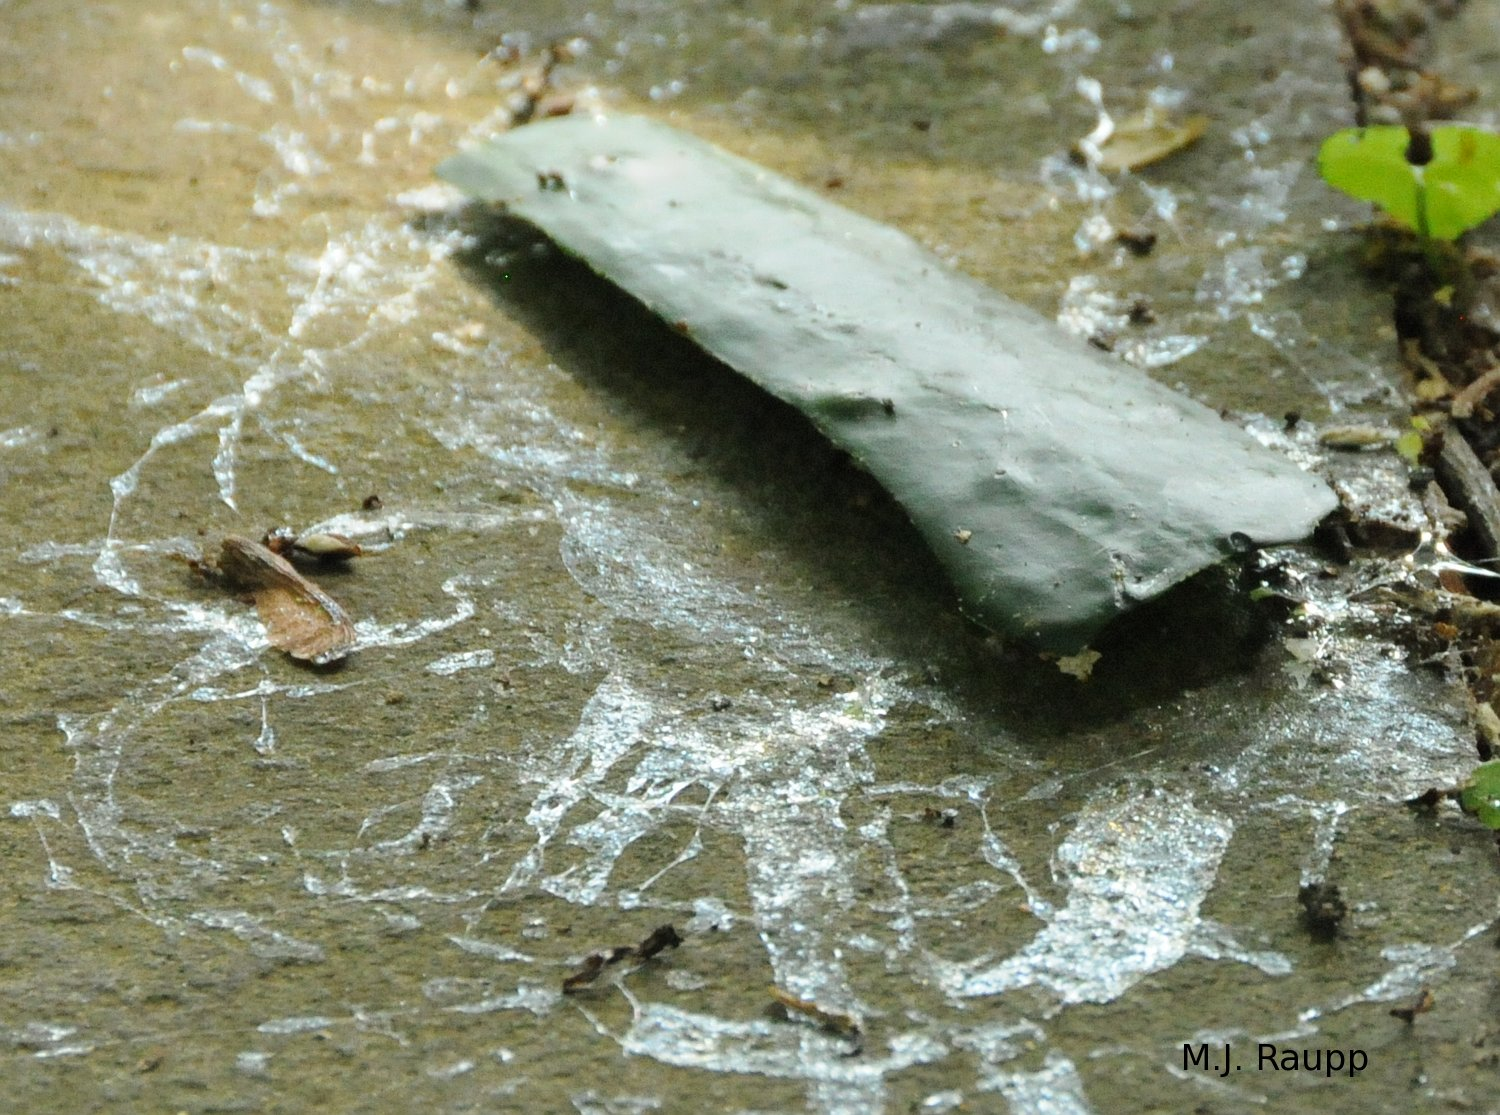 A fallen slice of cucumber is surrounded by slug trails in the morning.